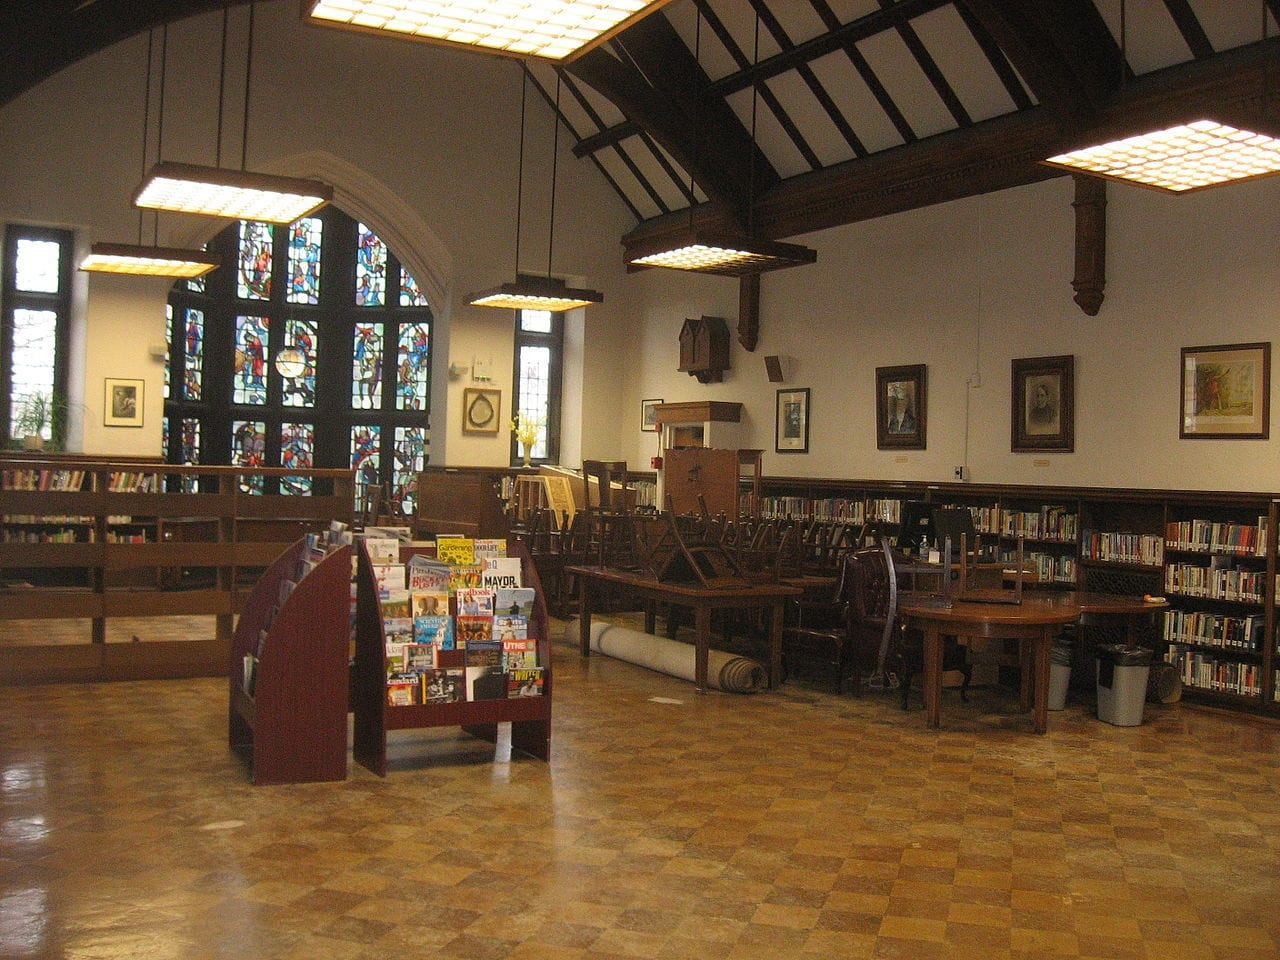 A public library with cork flooring